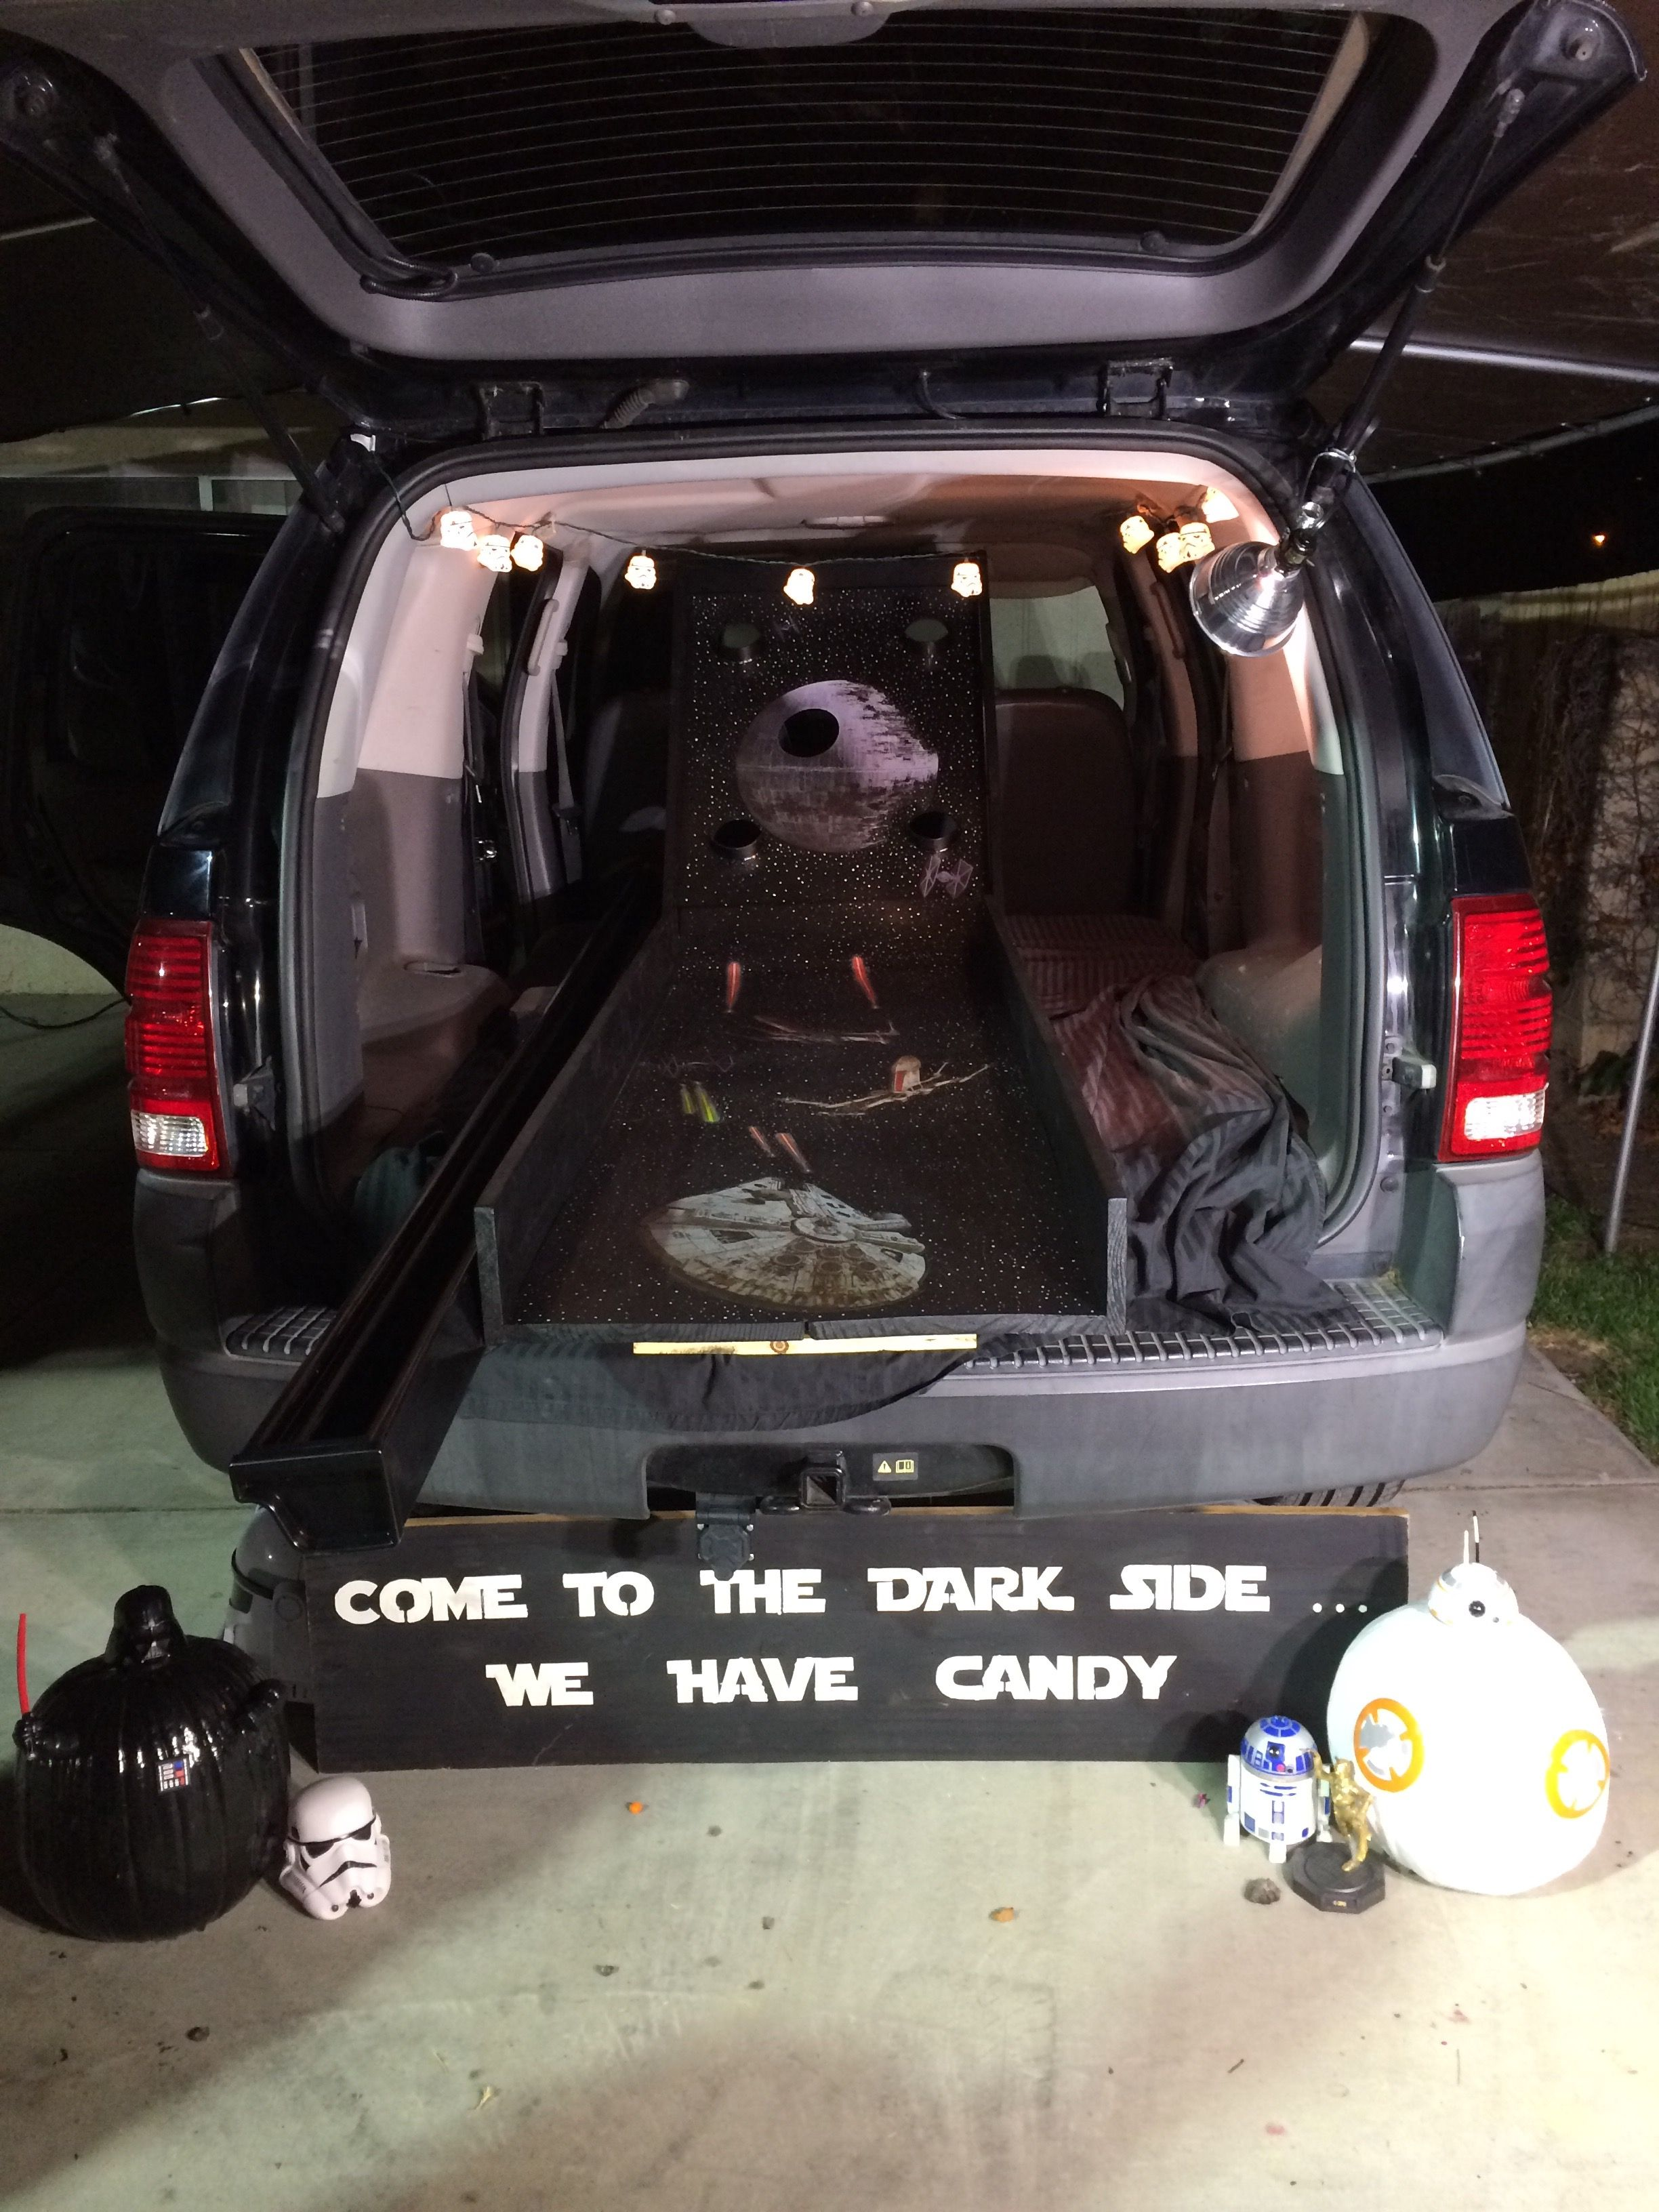 Star Wars Trunk Or Treat Skee Ball Trunk Or Treat Ideas Trunk Or